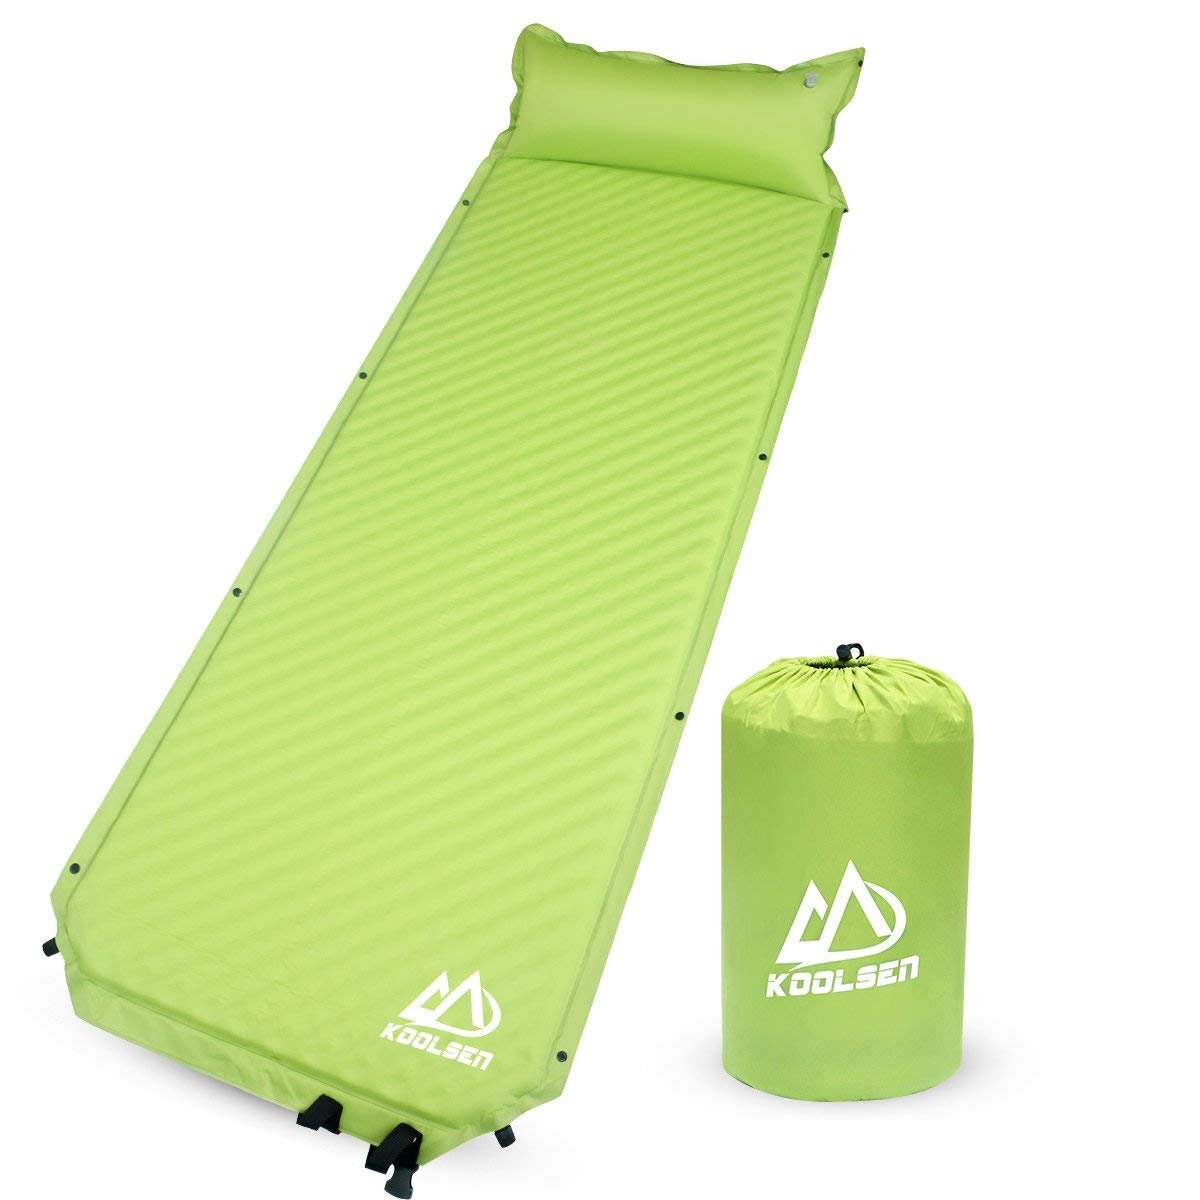 KOOLSEN Camping Self Inflating Sleeping Pad Attached Pillow Lightweight Air Sleeping Pads